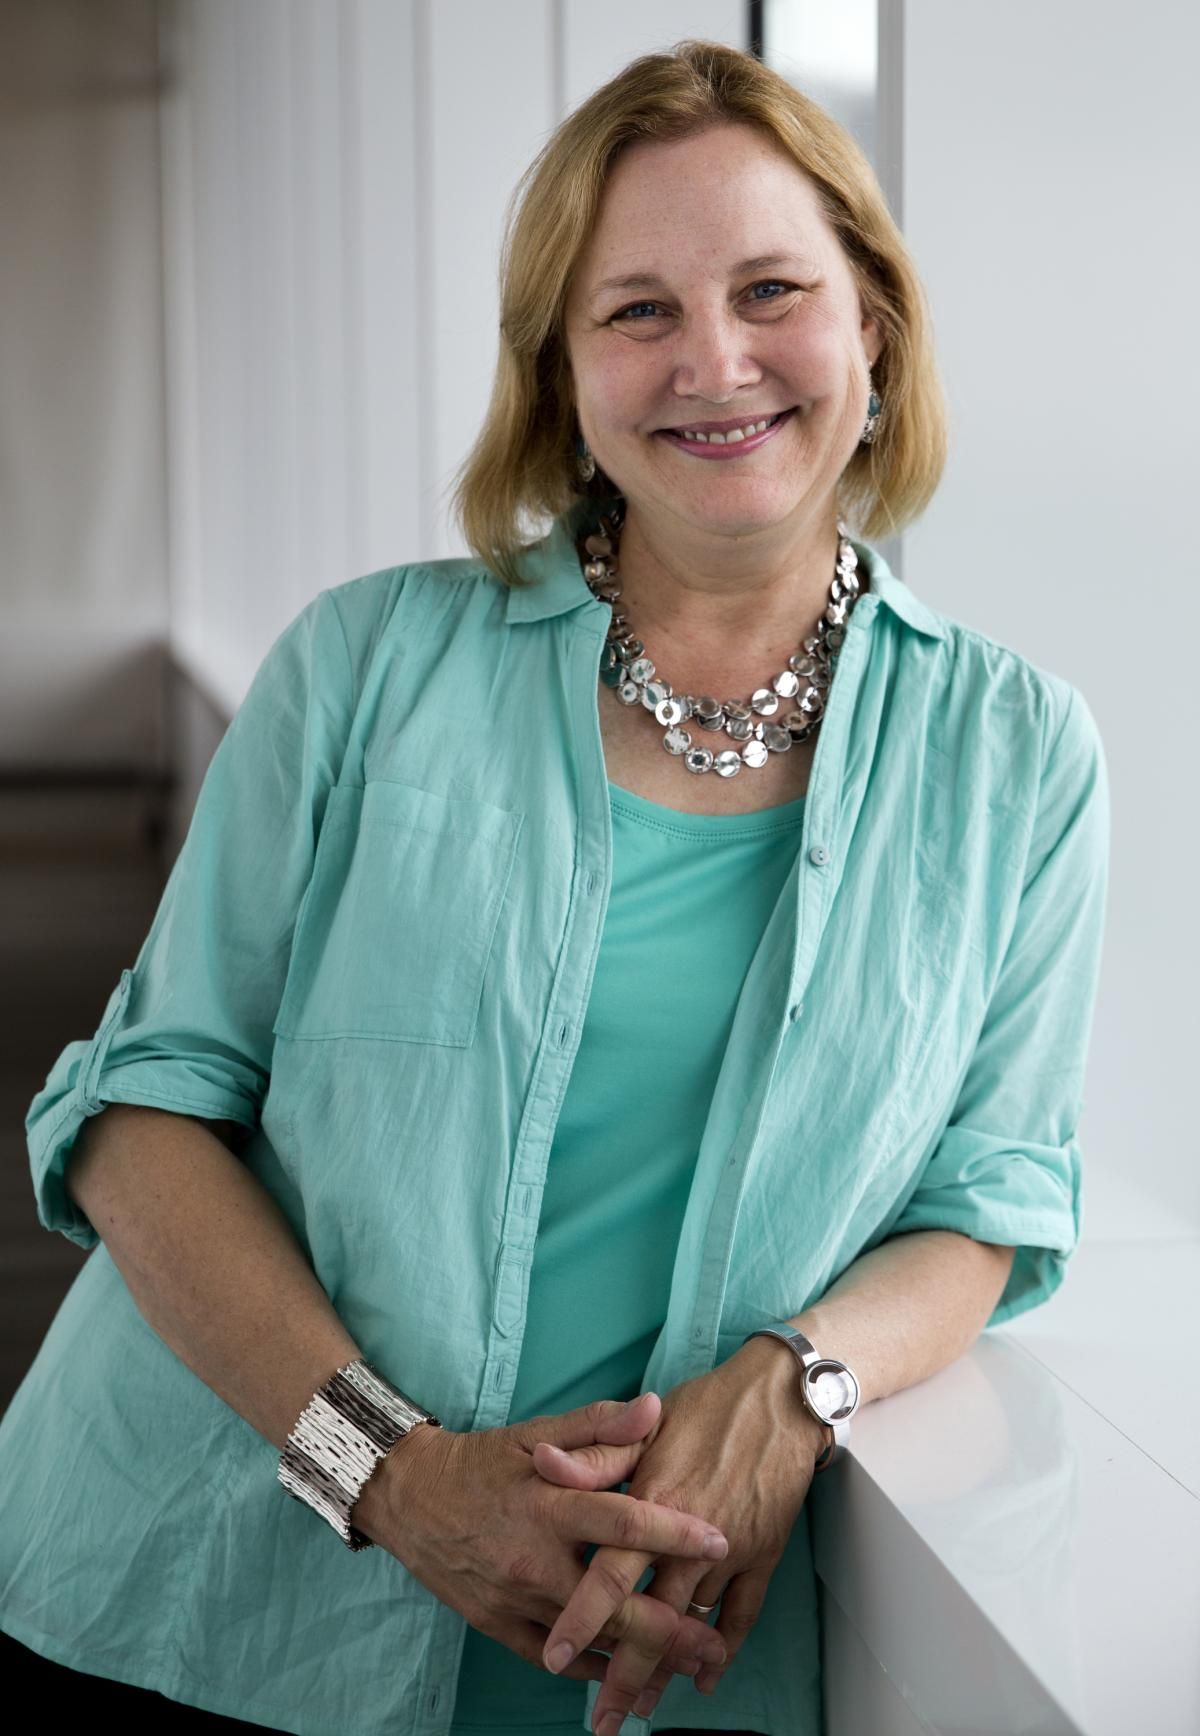 Katherine Applegate, pictured above at NPR in Washington, D.C., is the author of The Buffalo Storm, Home of the Brave and The One and Only Ivan. Along with her husband, she co-wrote the young adult series Animorphs.